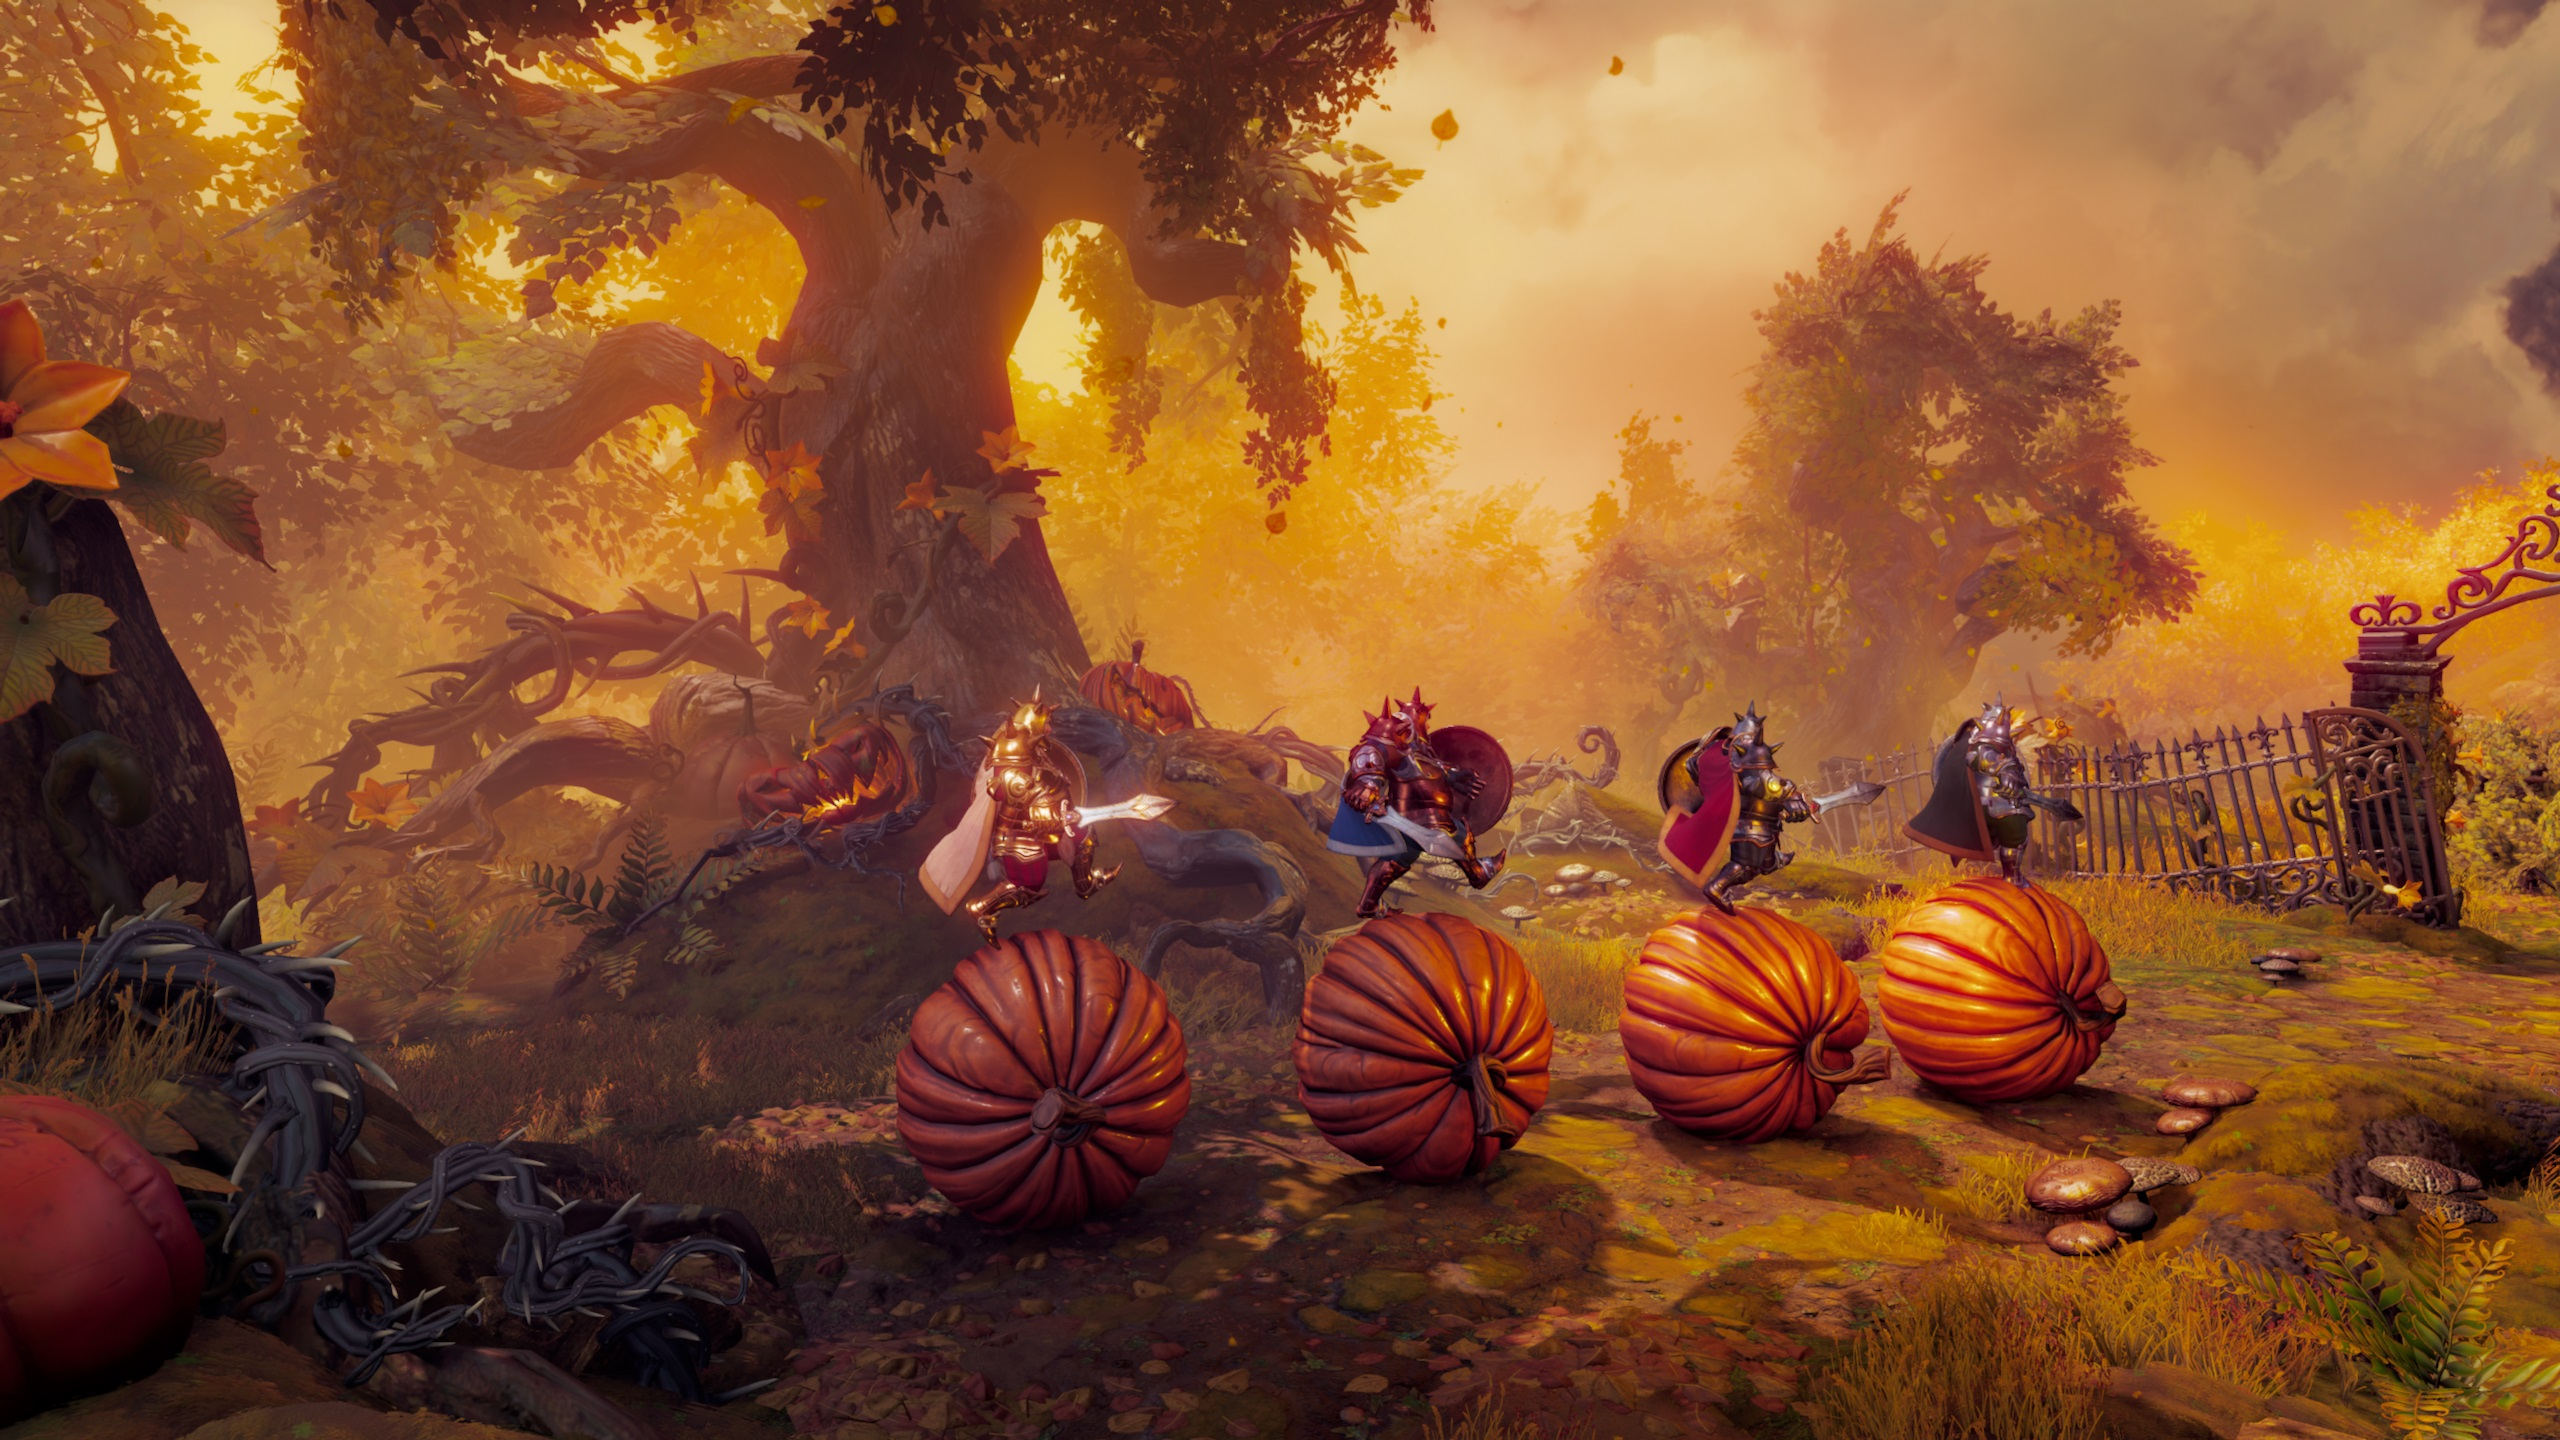 Trine 4 is all set for an October launch screenshot